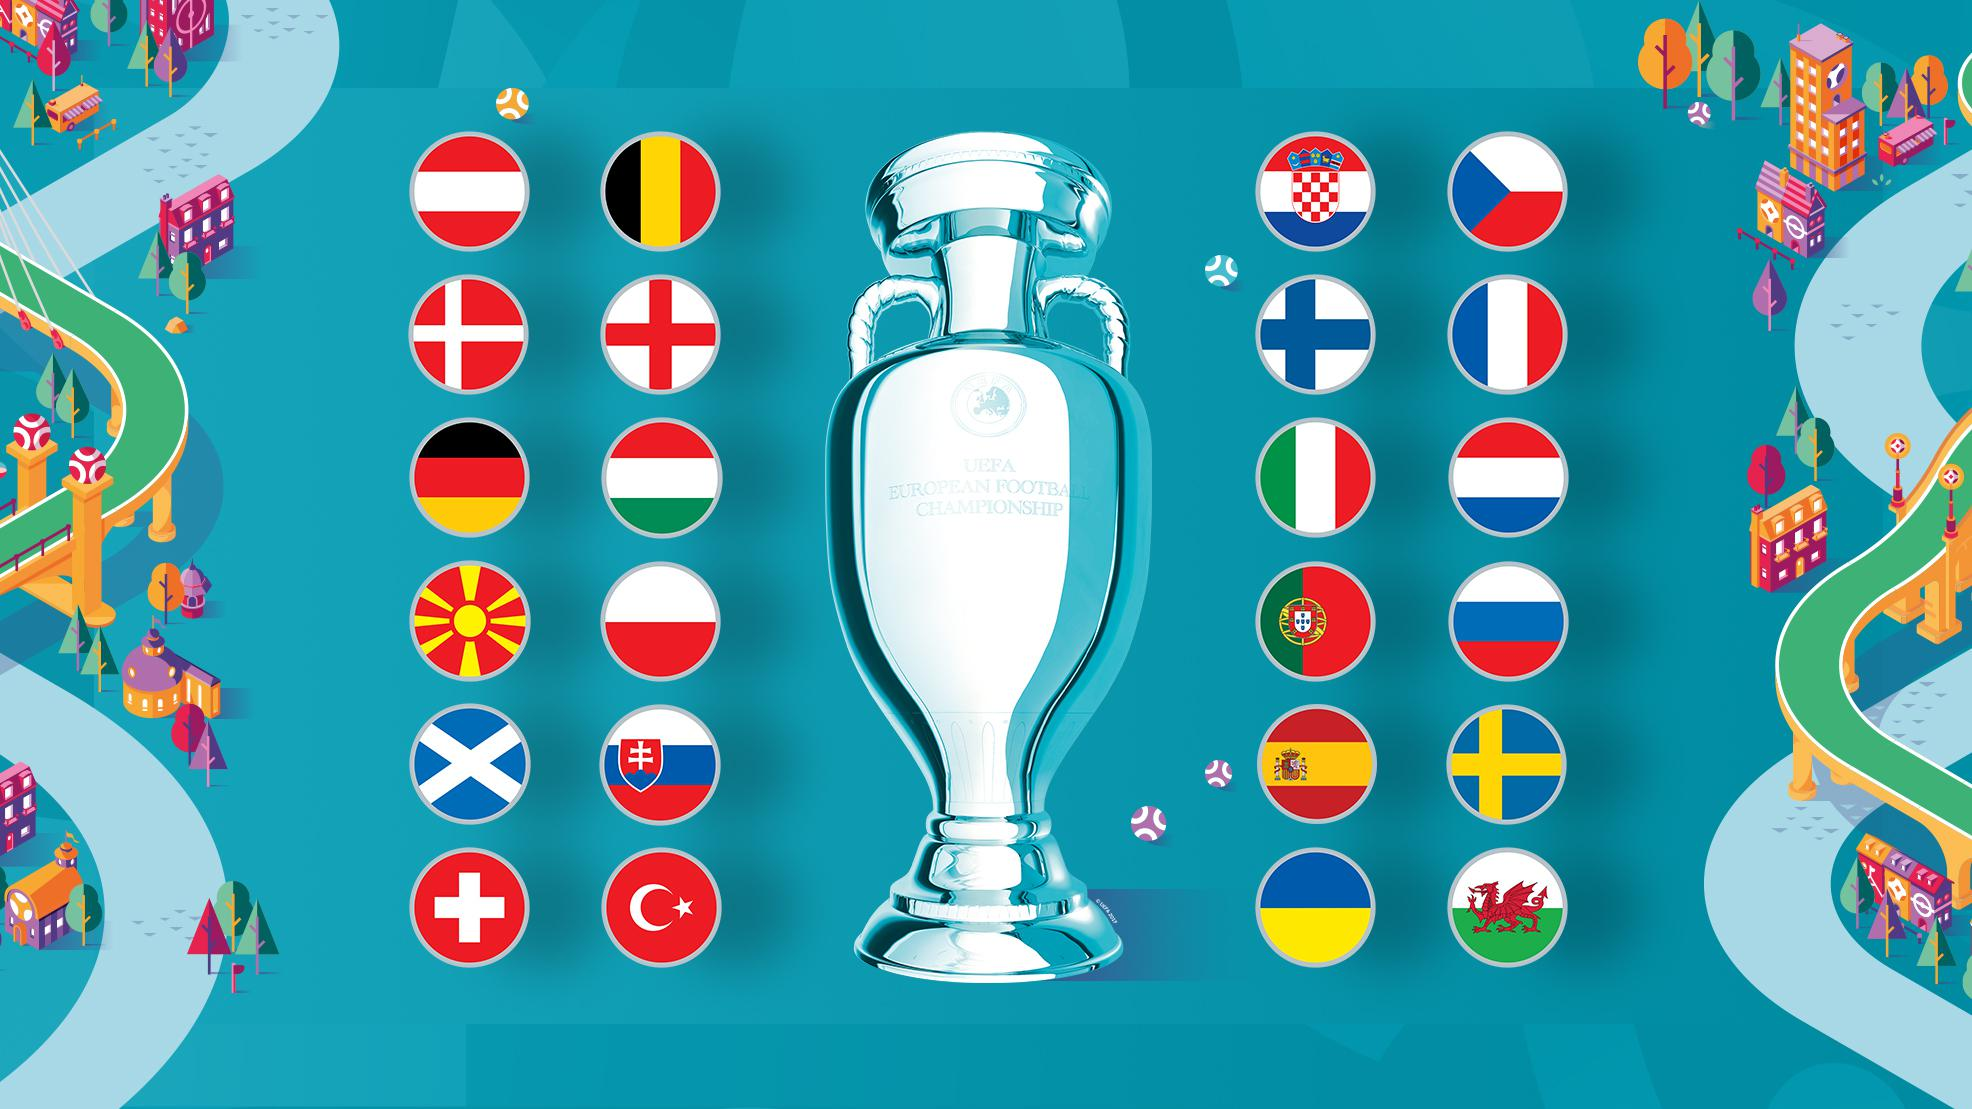 All qualified teams for the Euro 2020